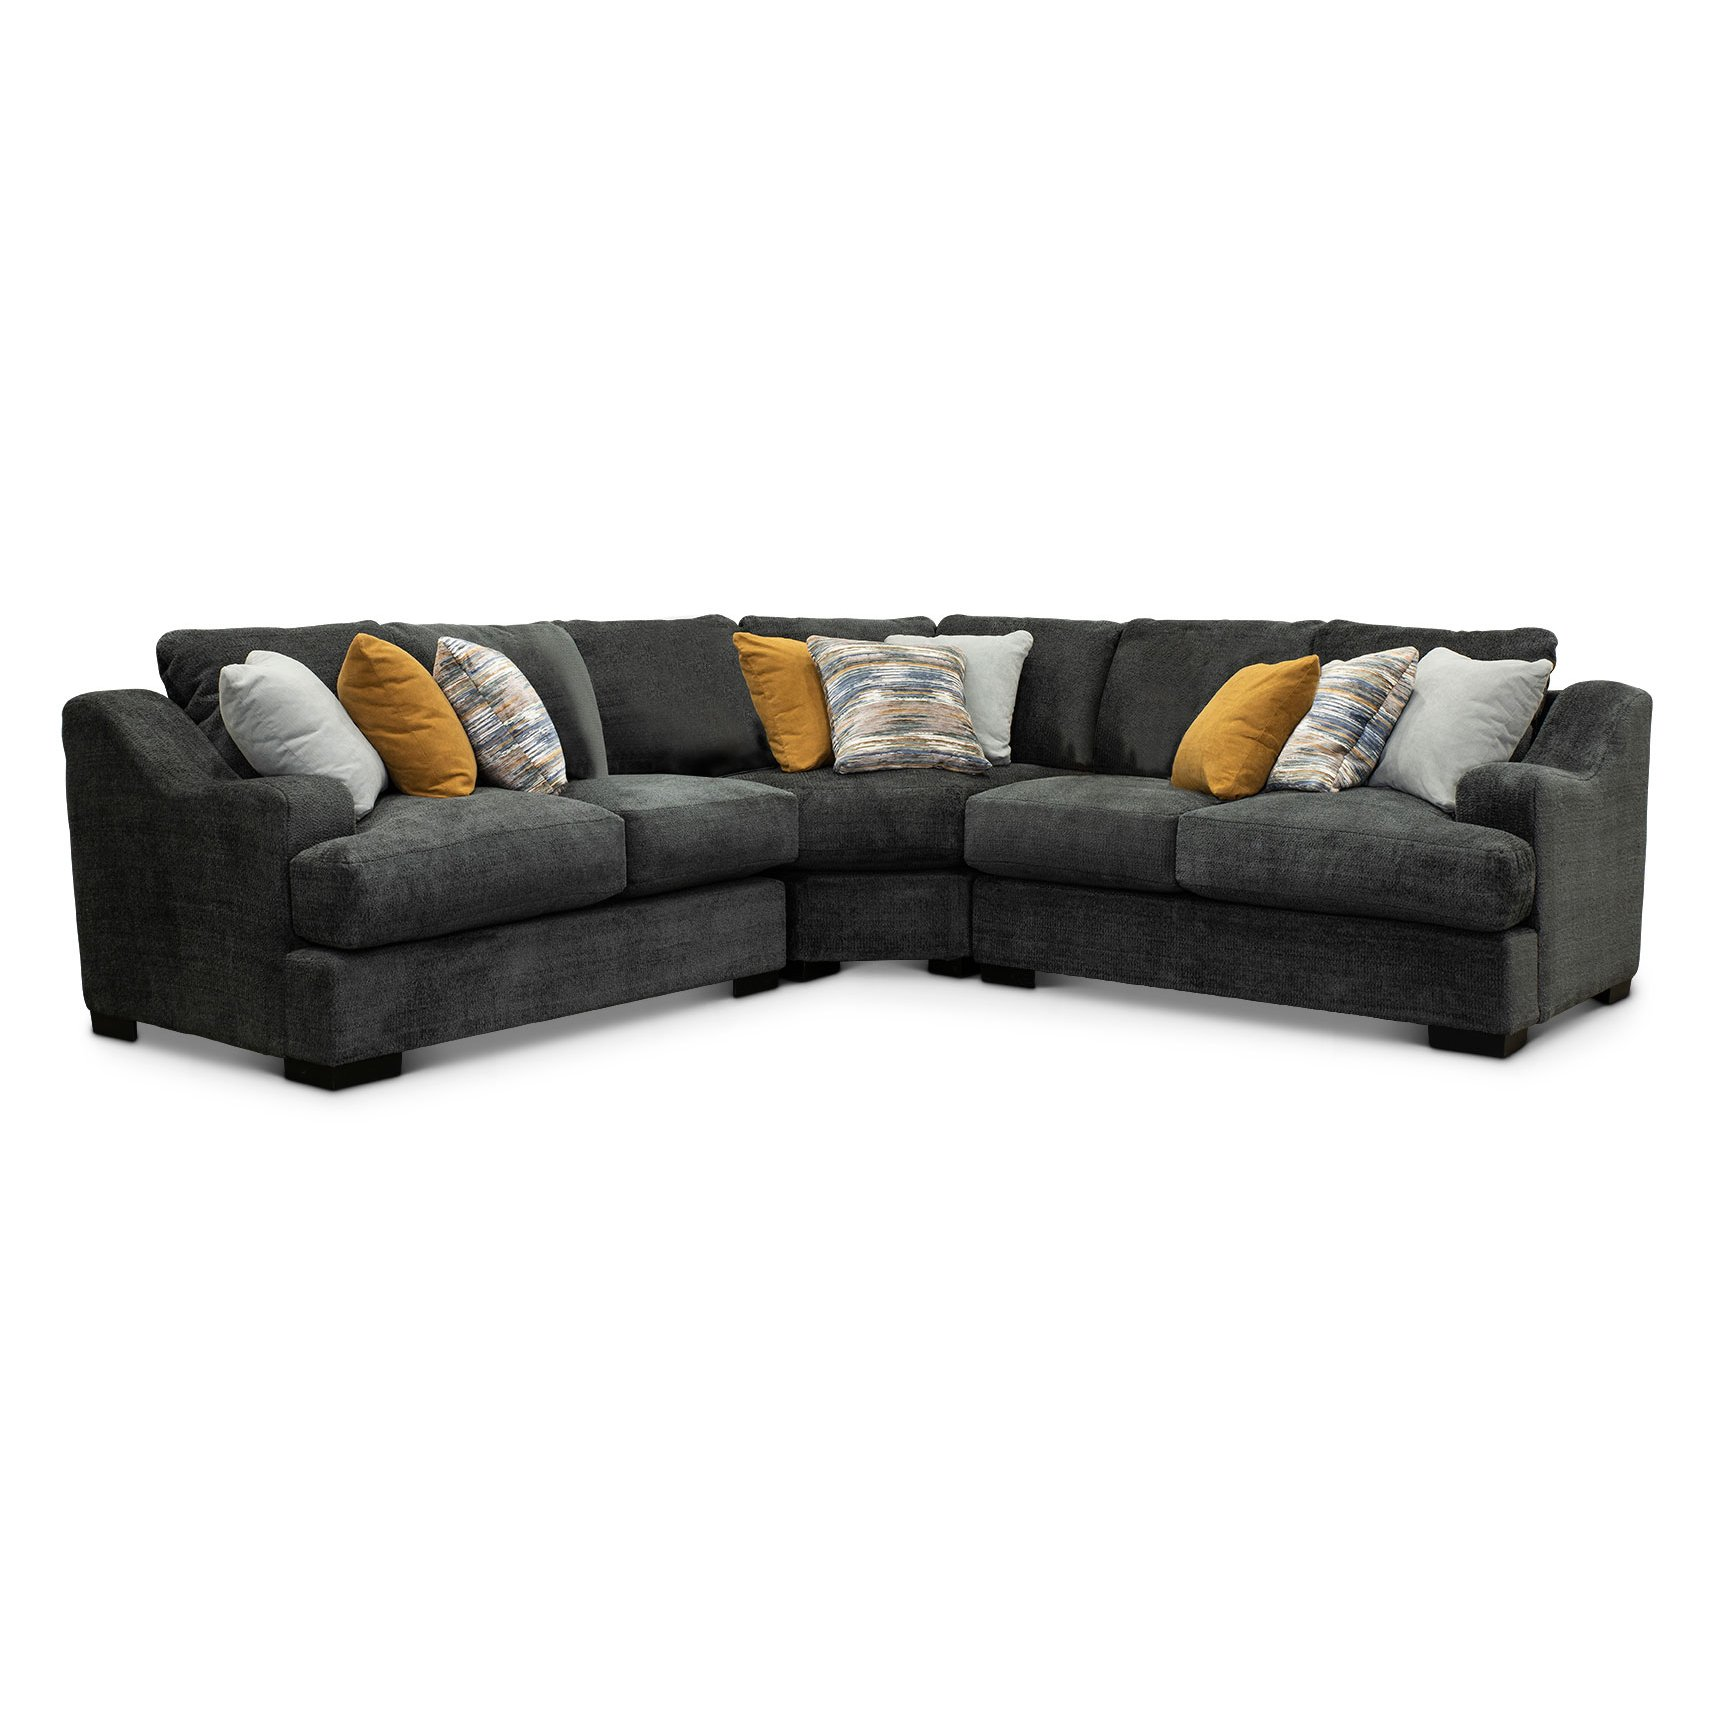 Graphite Gray 3 Piece Sectional Sofa - Challenger | RC Willey